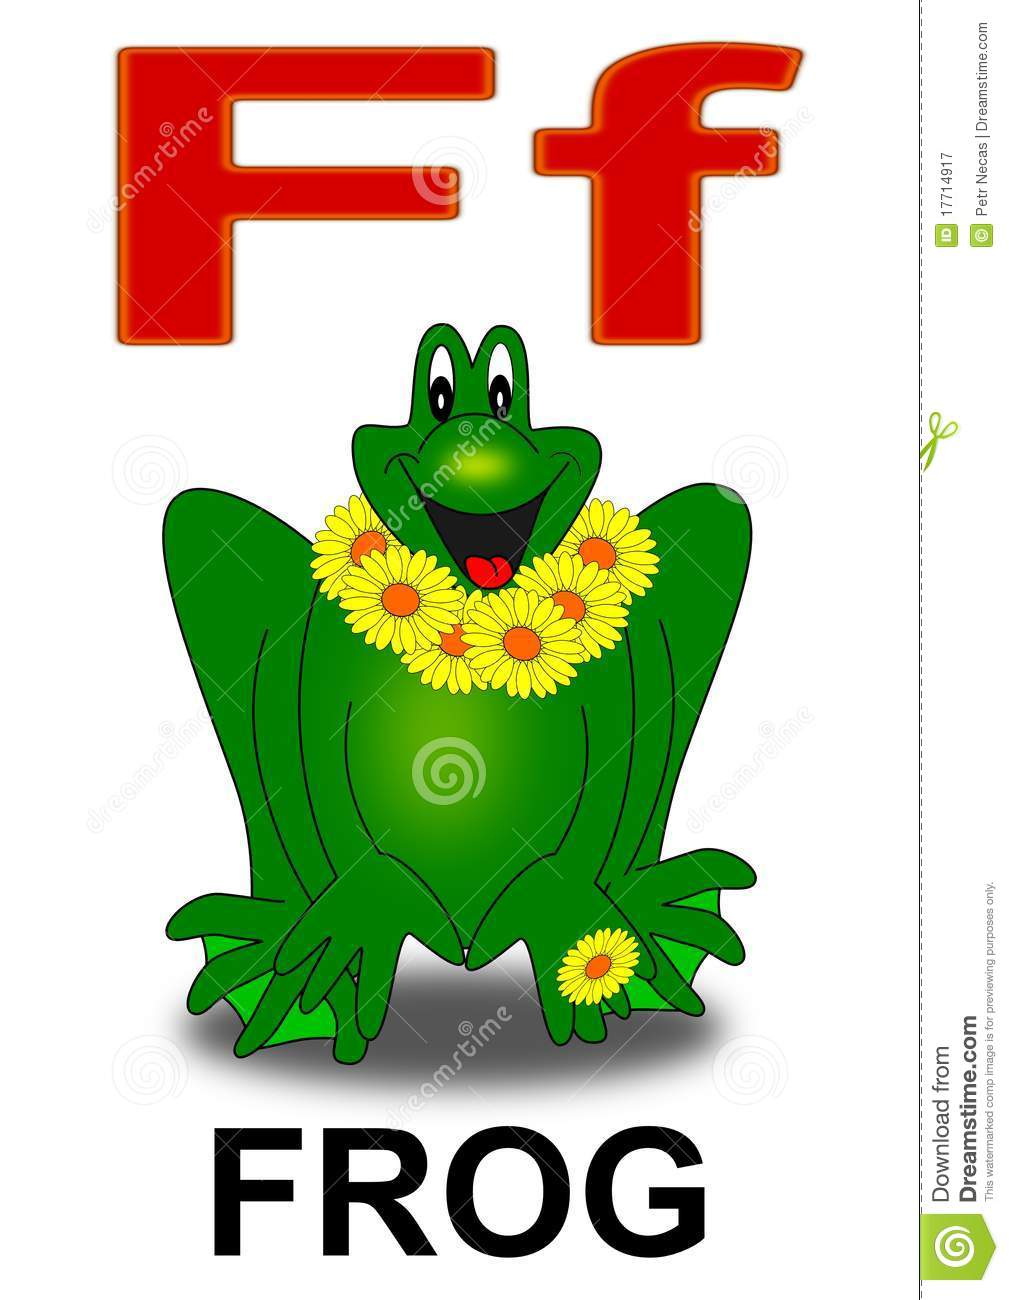 Letter F Frog Royalty Free Stock graphy Image